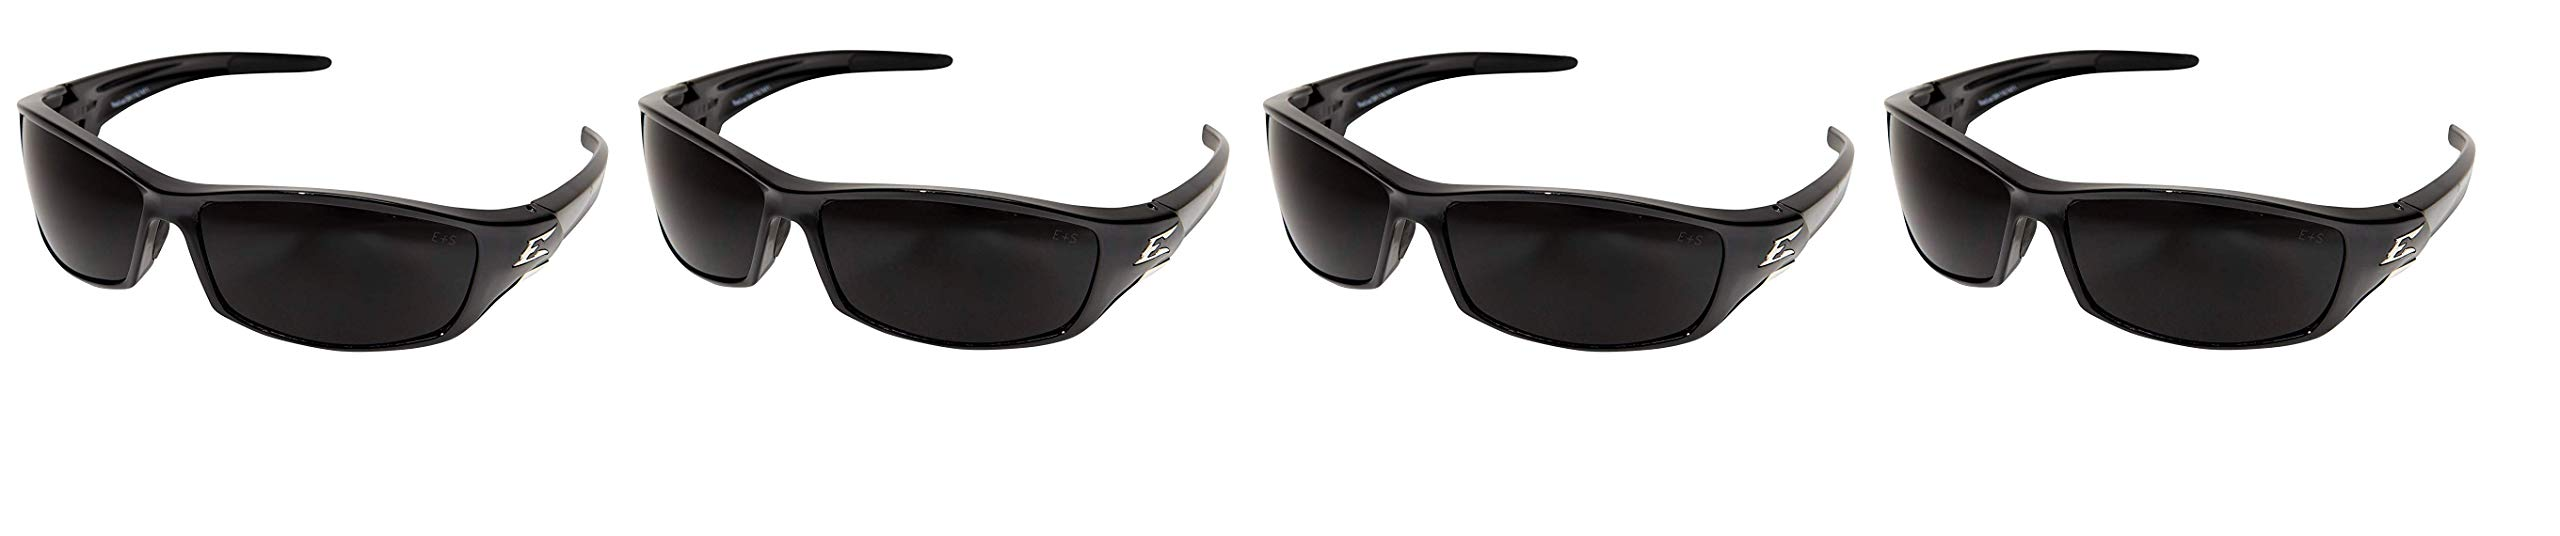 Edge Eyewear SR116 Reclus Safety Glasses, Black with Smoke Lens (Fоur Paсk) by Edge Eyewear